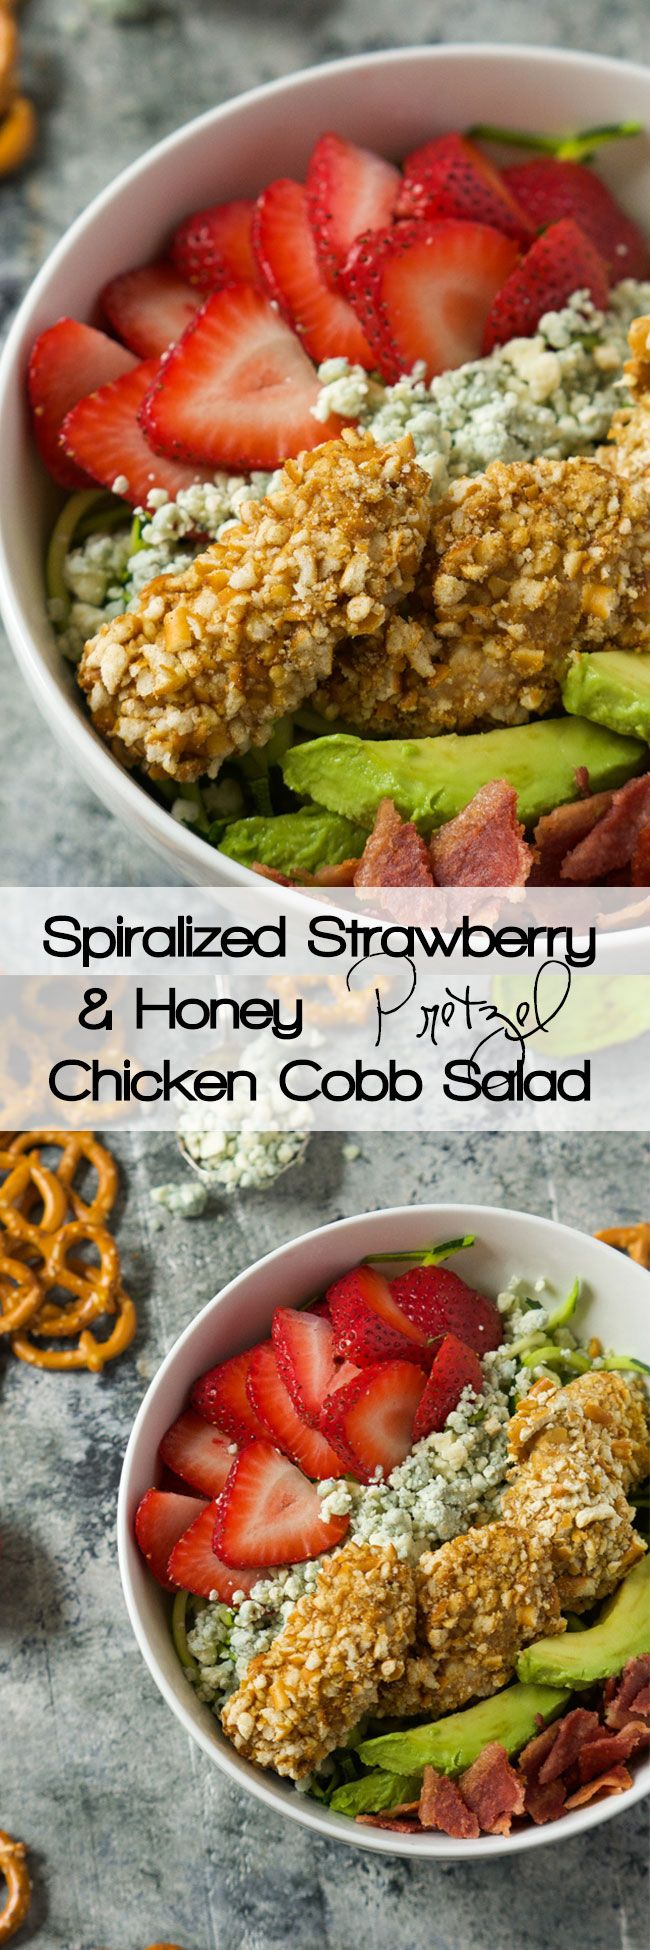 A fresh and summery salad that is slightly sweet and spicy all in the same bite! This Strawberry & Honey Mustard Pretzel Chicken Cobb Salad will step up your dinner time salad in no time!